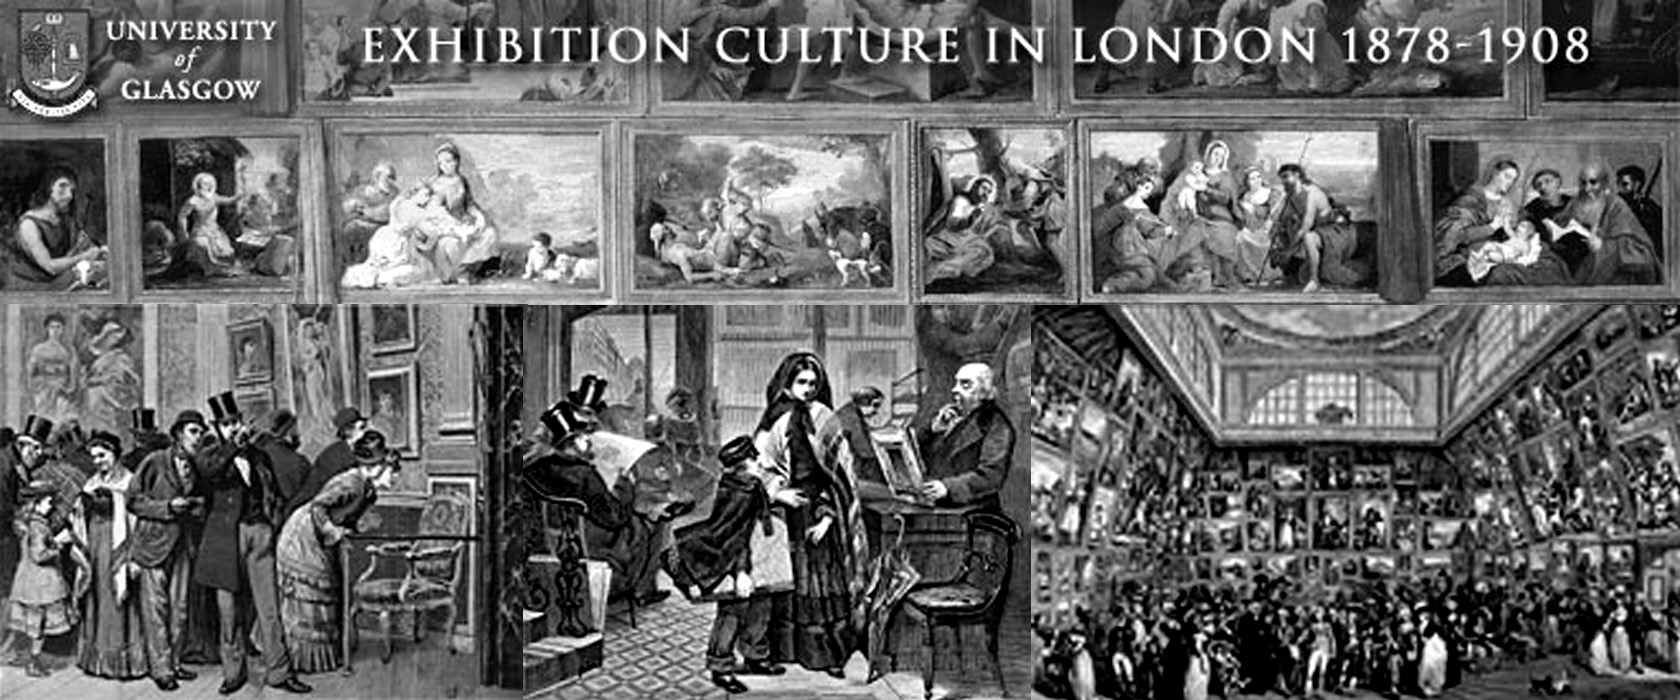 Exhibition Culture in London 1878-1908